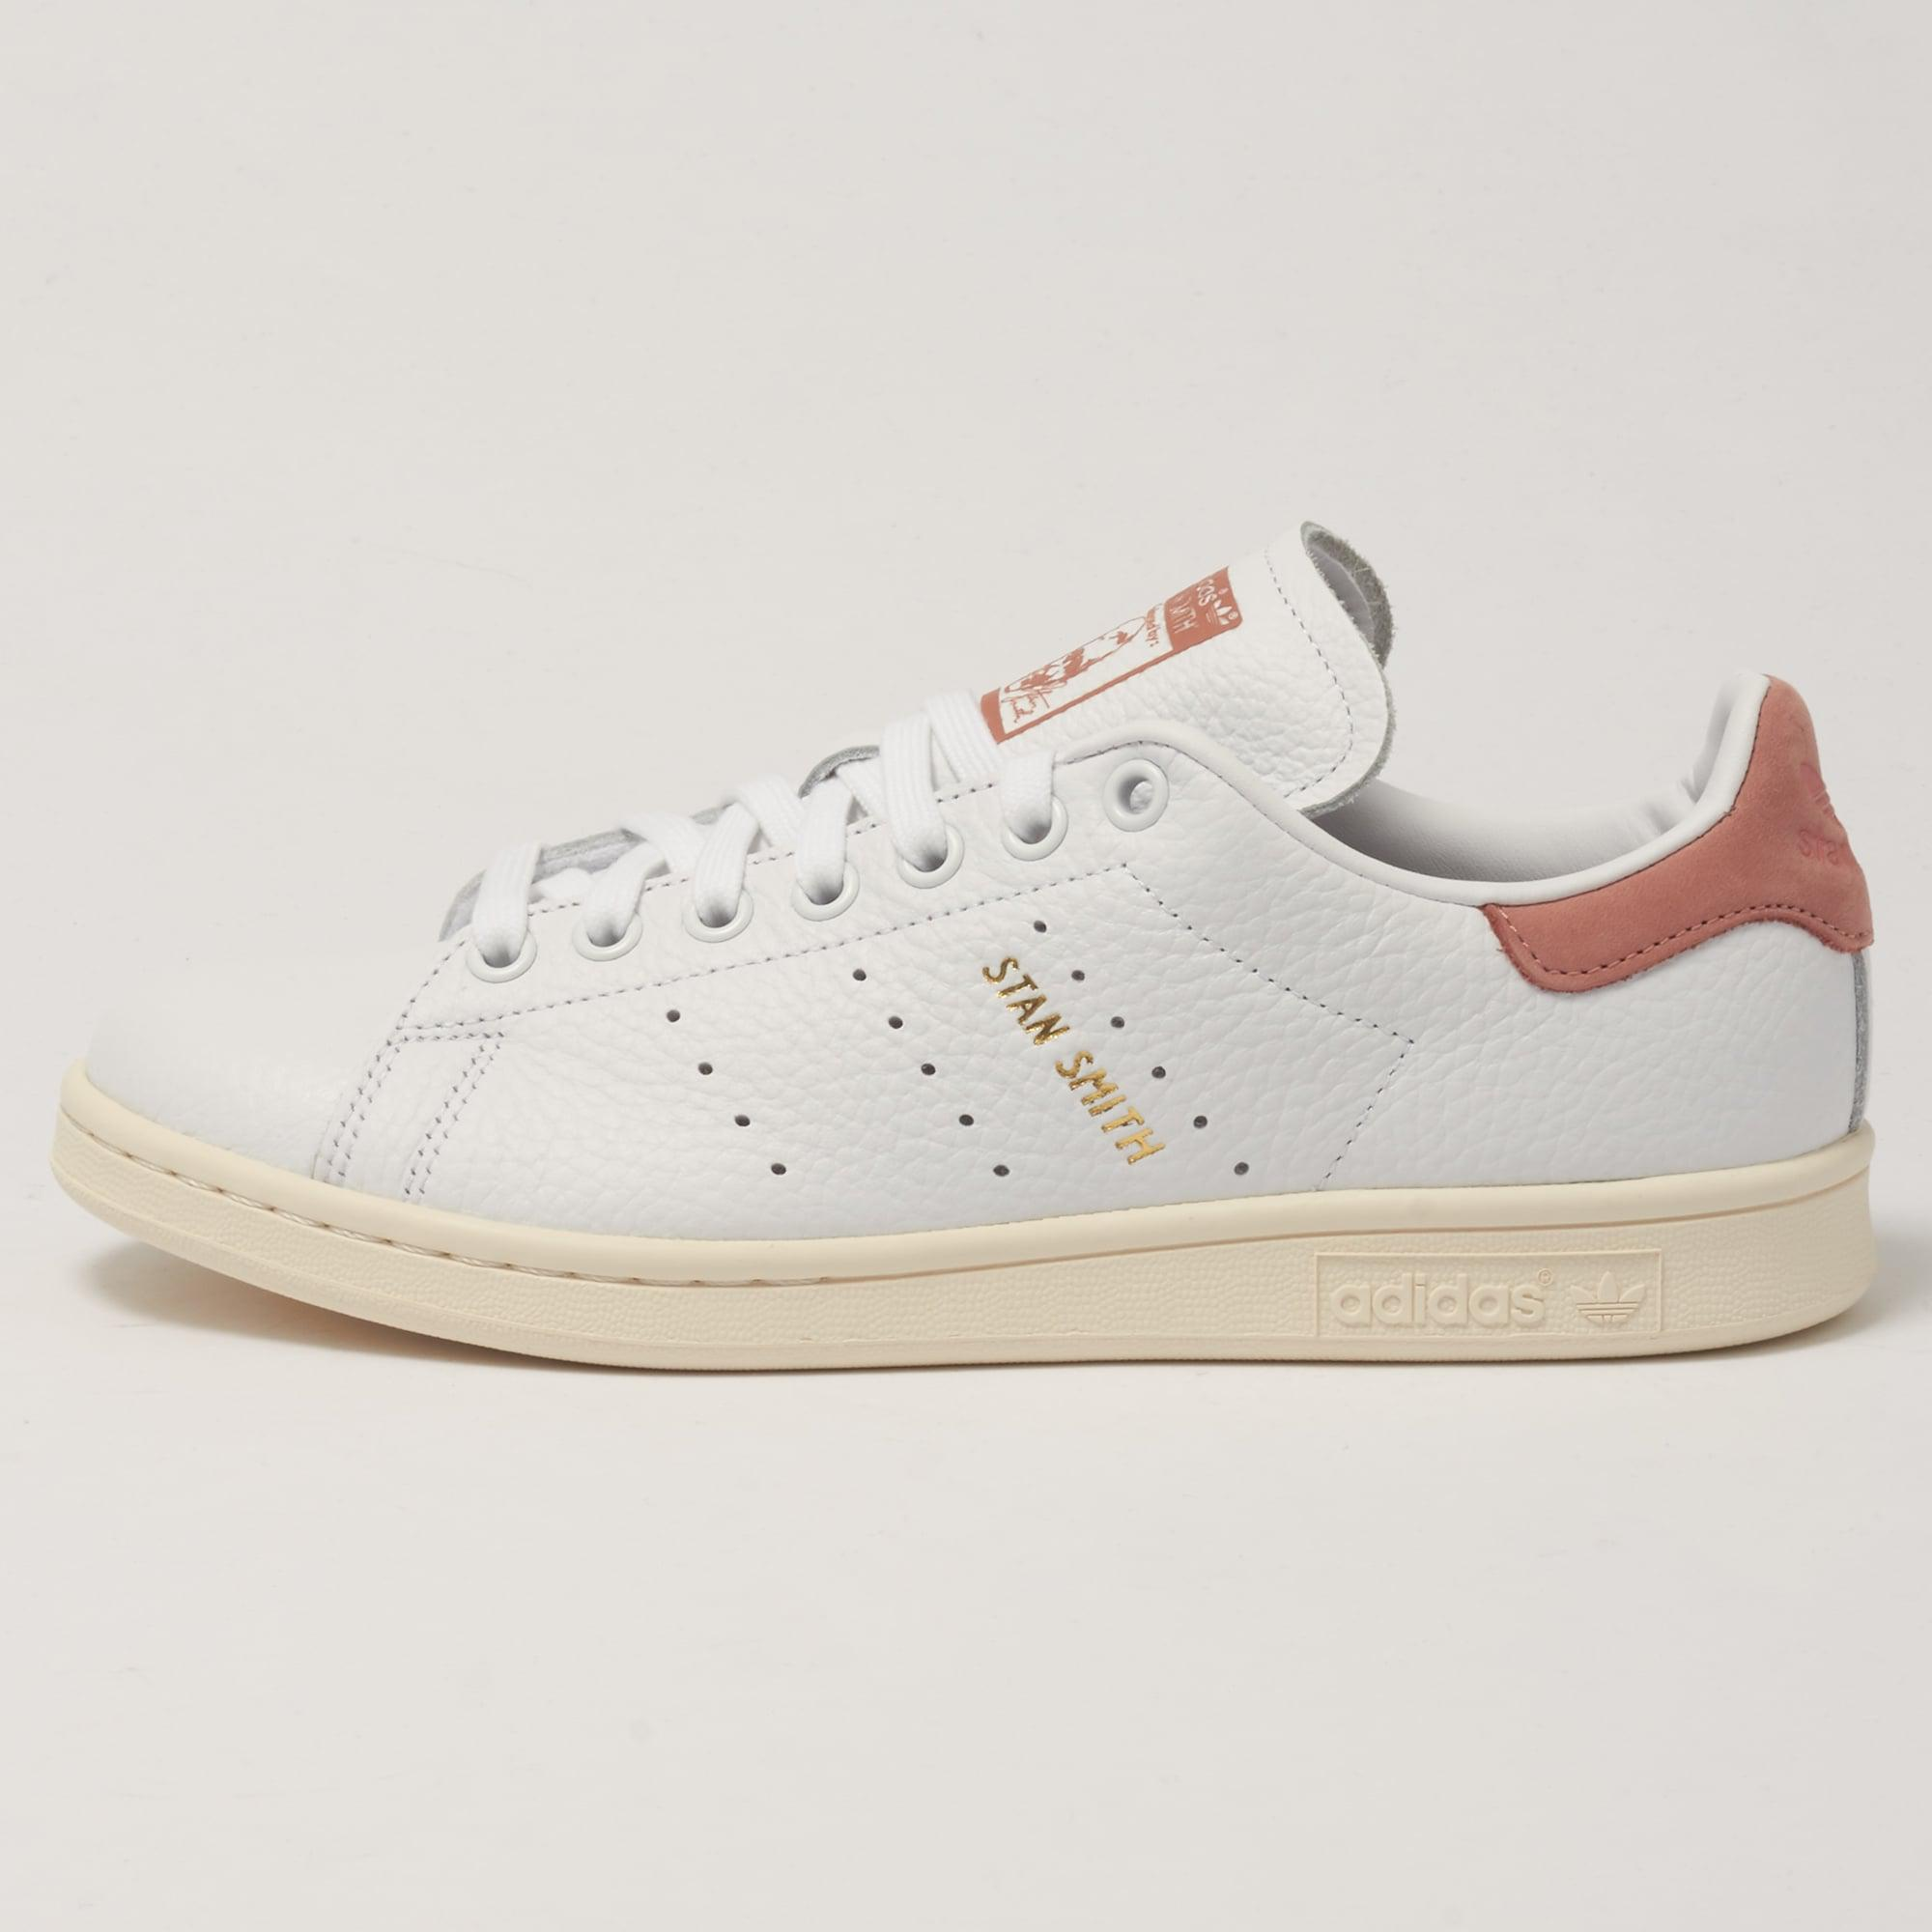 adidas original stan smith white/raw pink